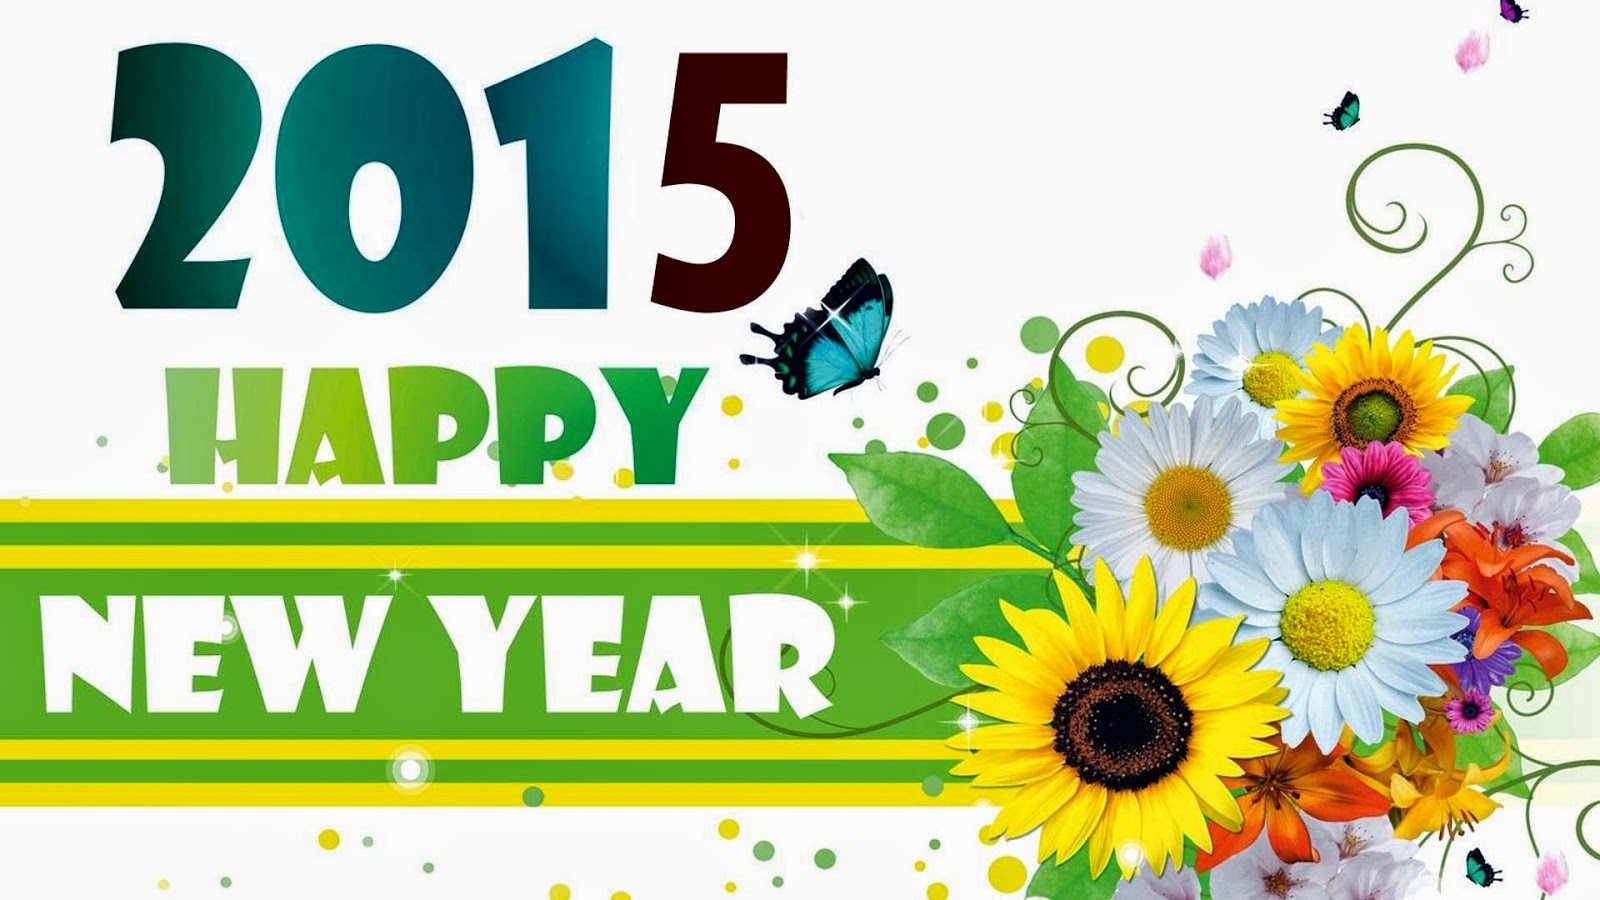 Happy New Year Greetings 2015 Happy New Year 2015 Images